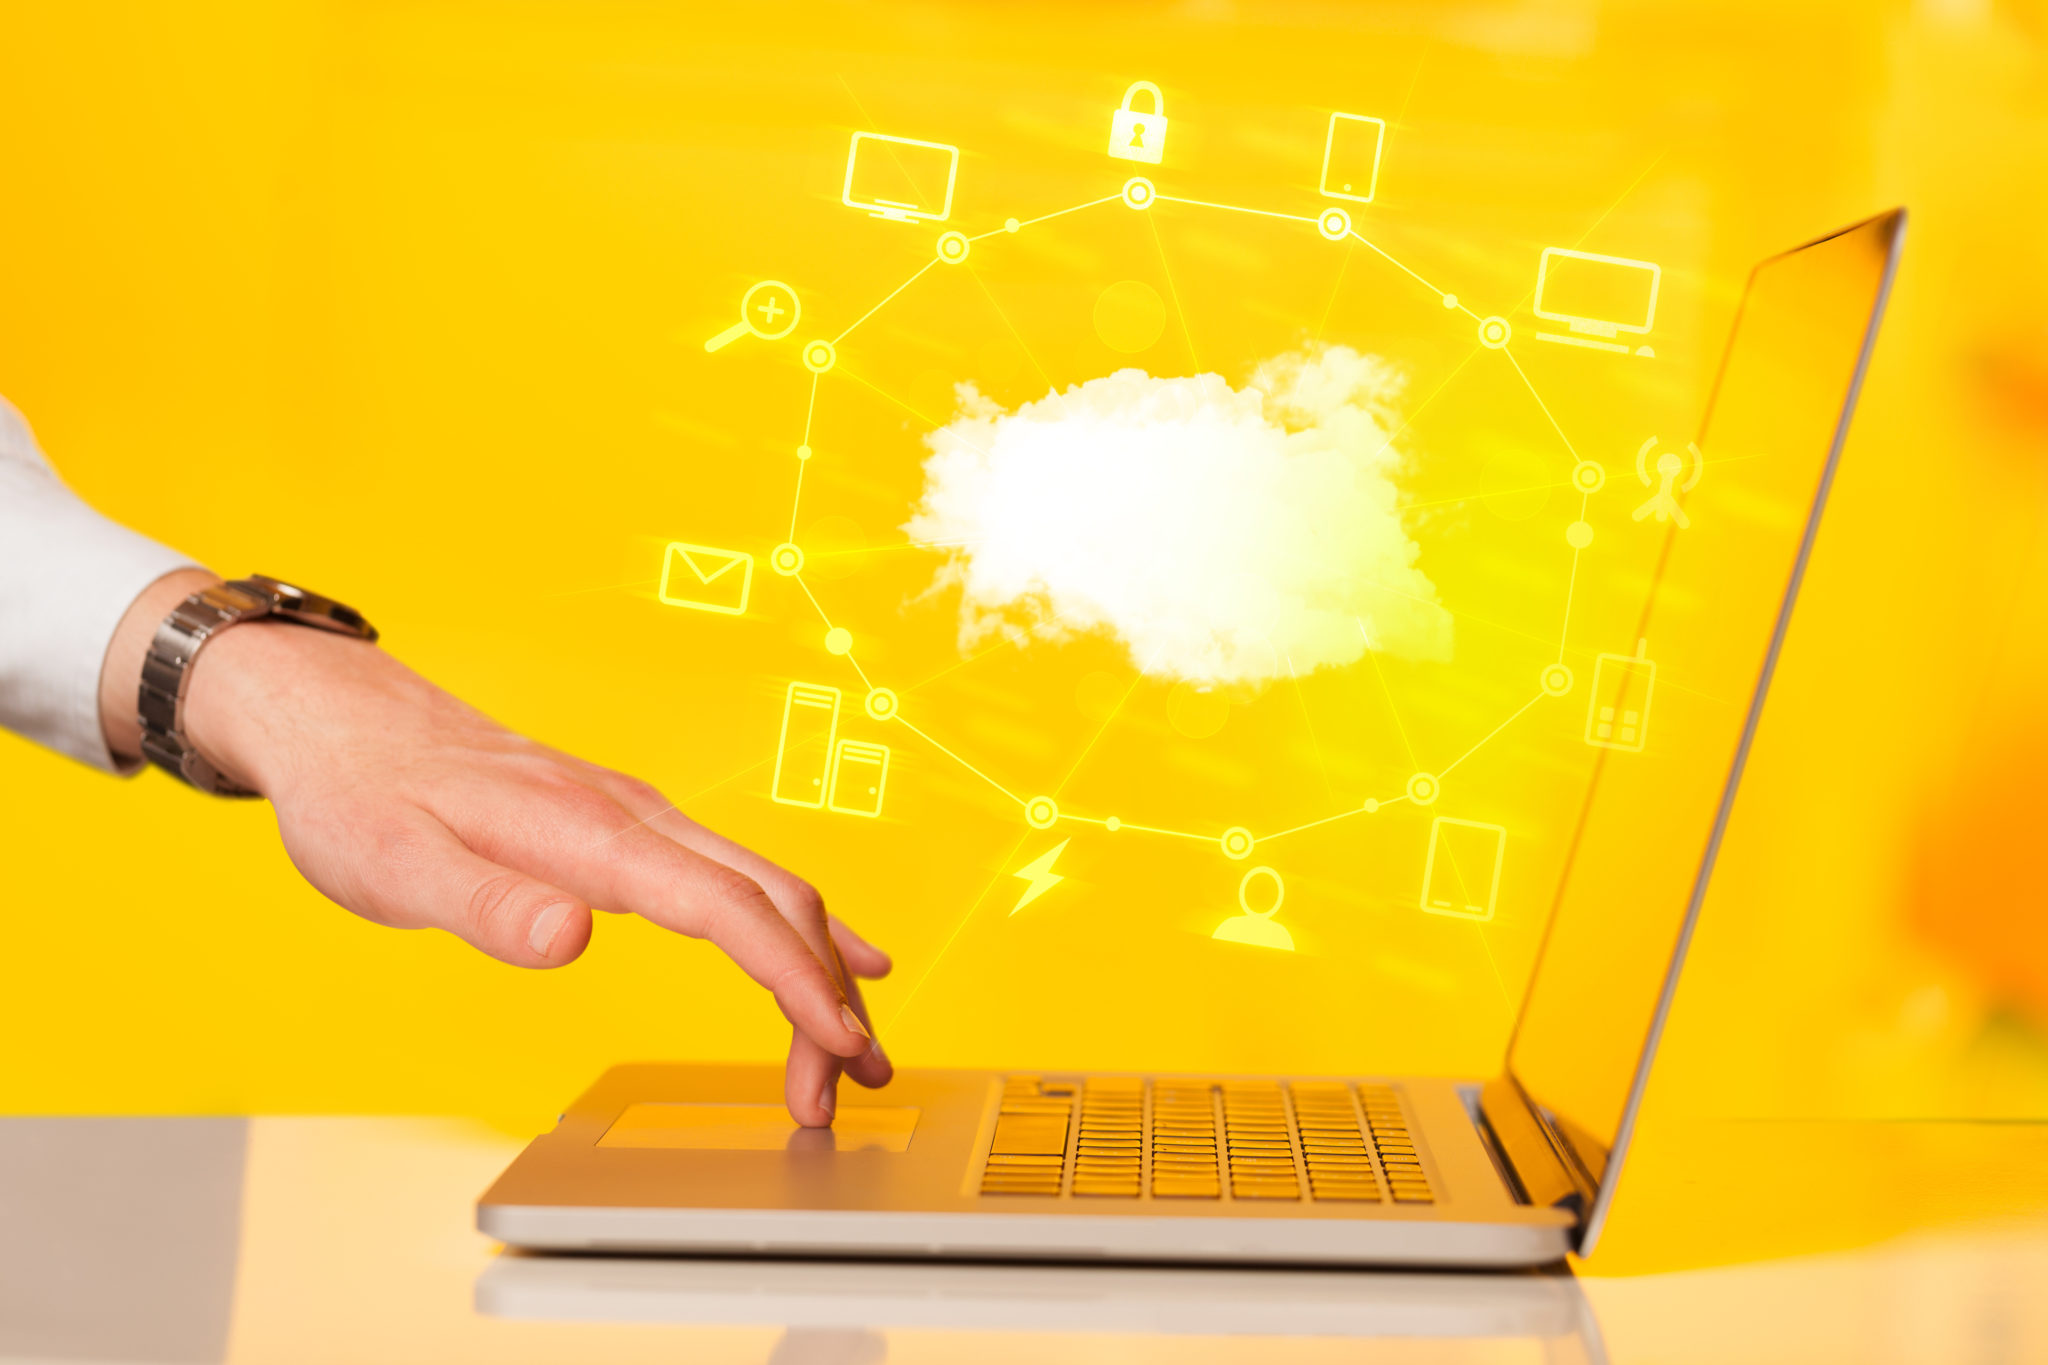 Hand working with a Cloud Computing diagram